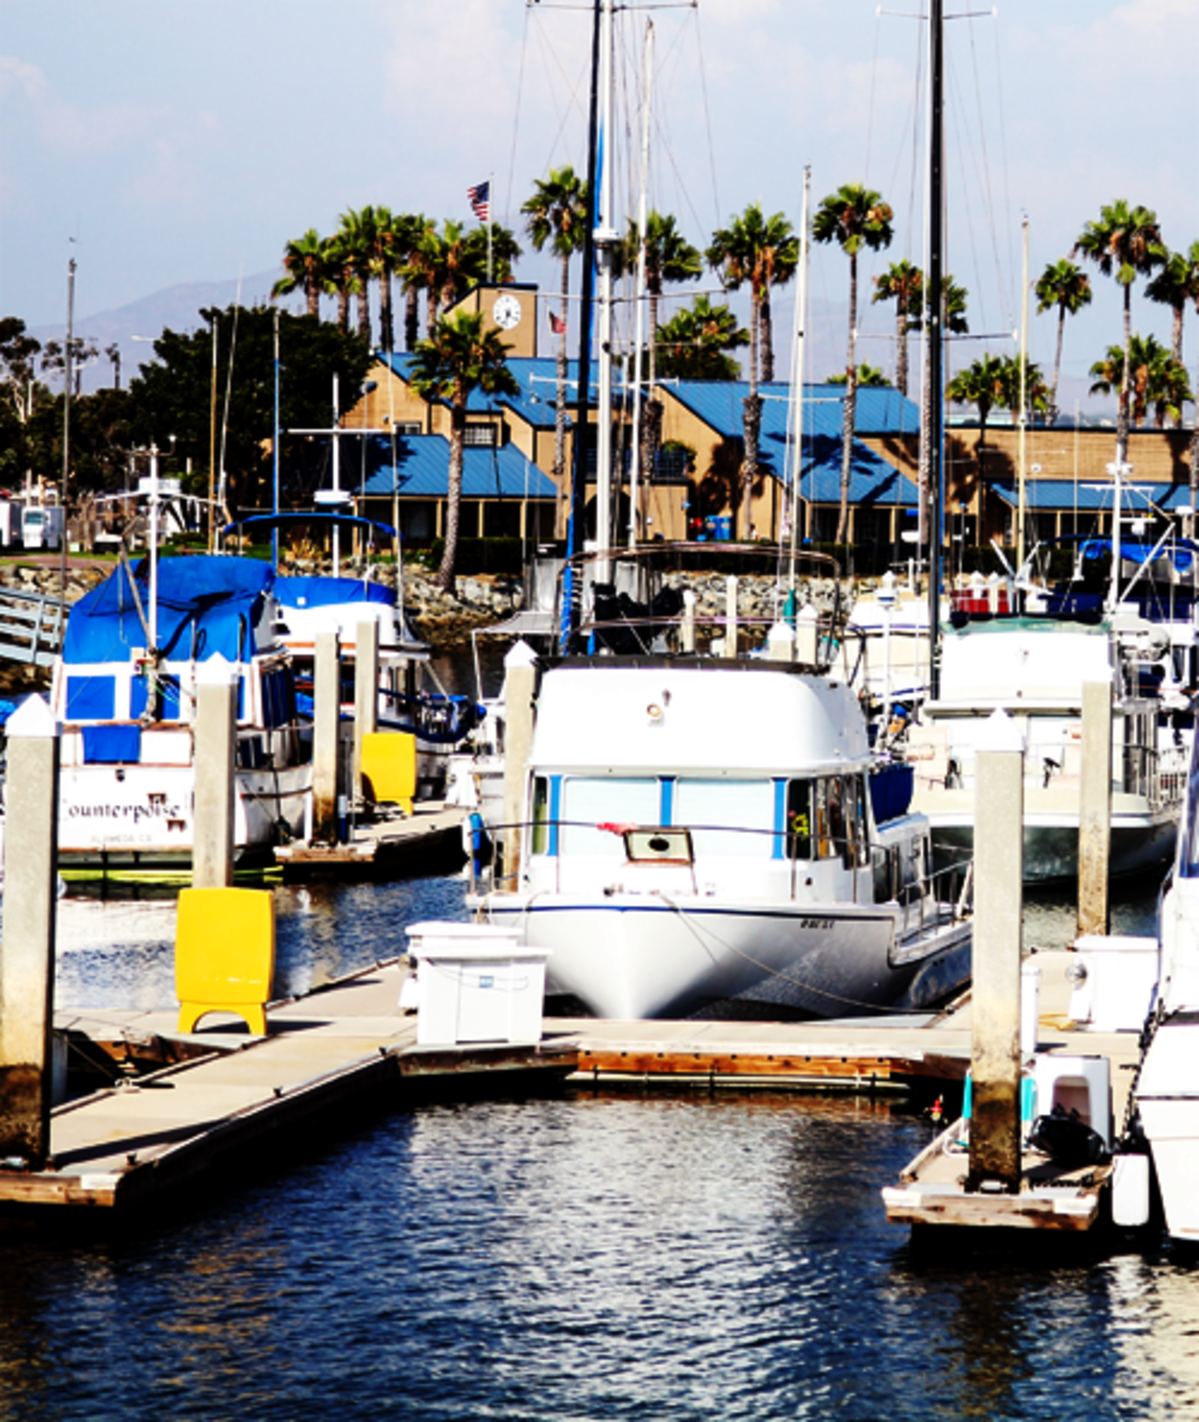 Chula Vista Marina | Slip Into San Diego's Beautiful South